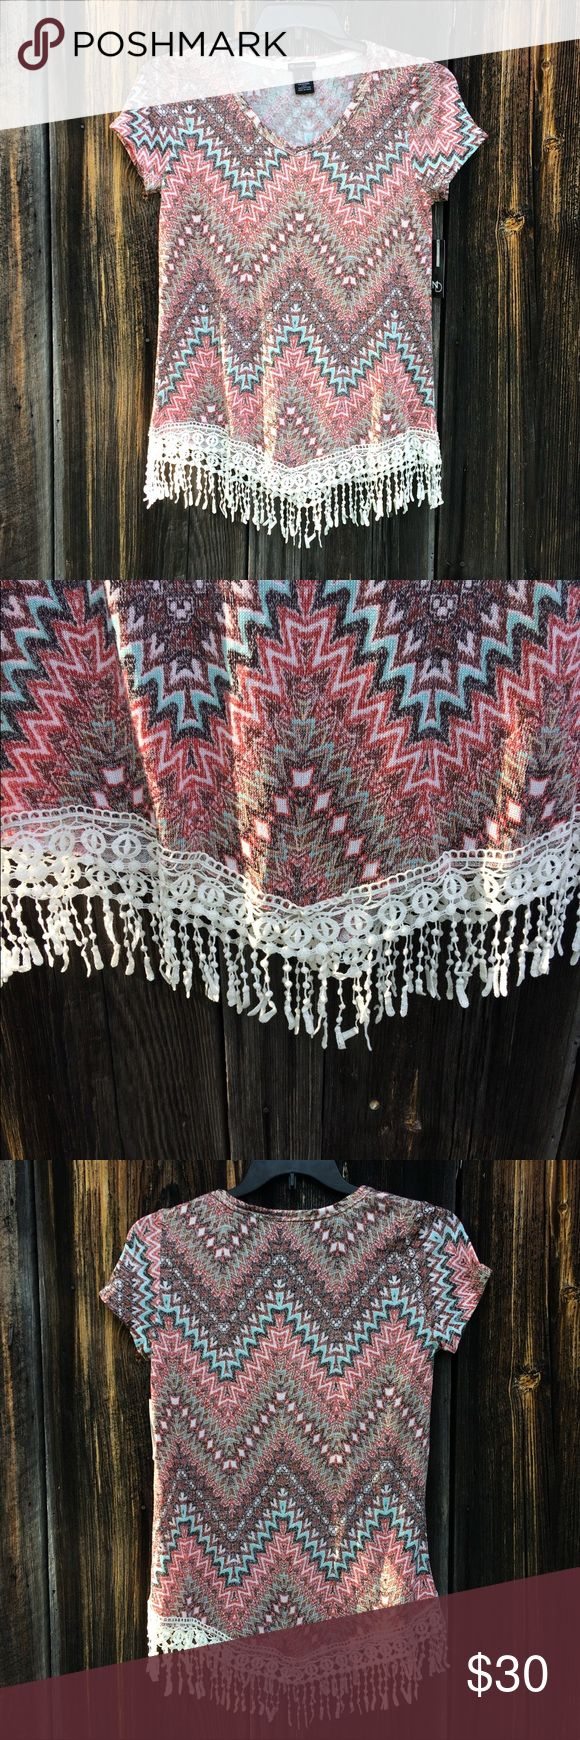 New Directions Aztec Print Lace Fringe Blouse Top Beautiful Aztec print blouse with gorgeous lace embellishment at the bottom.   This blouse would be perfect paired with black business pants and heels for a business-casual look, or leggings or shorts for a casual & comfy look! Brown, tan, teal & pink in color   **Size S but seems to be made with extra room Never worn. Comes with original tags** New Directions Tops Blouses